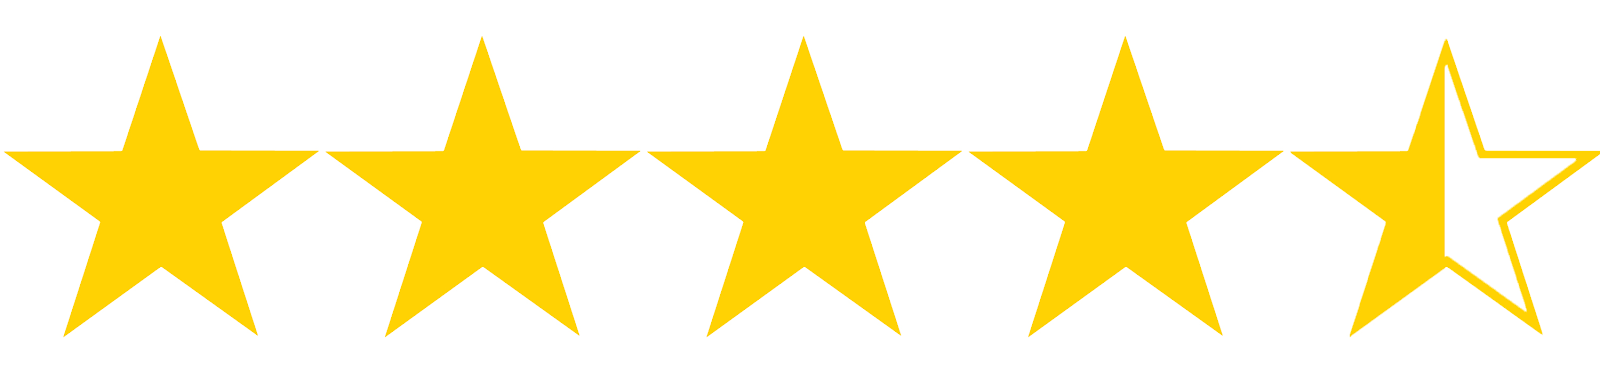 four_half-stars_0.png